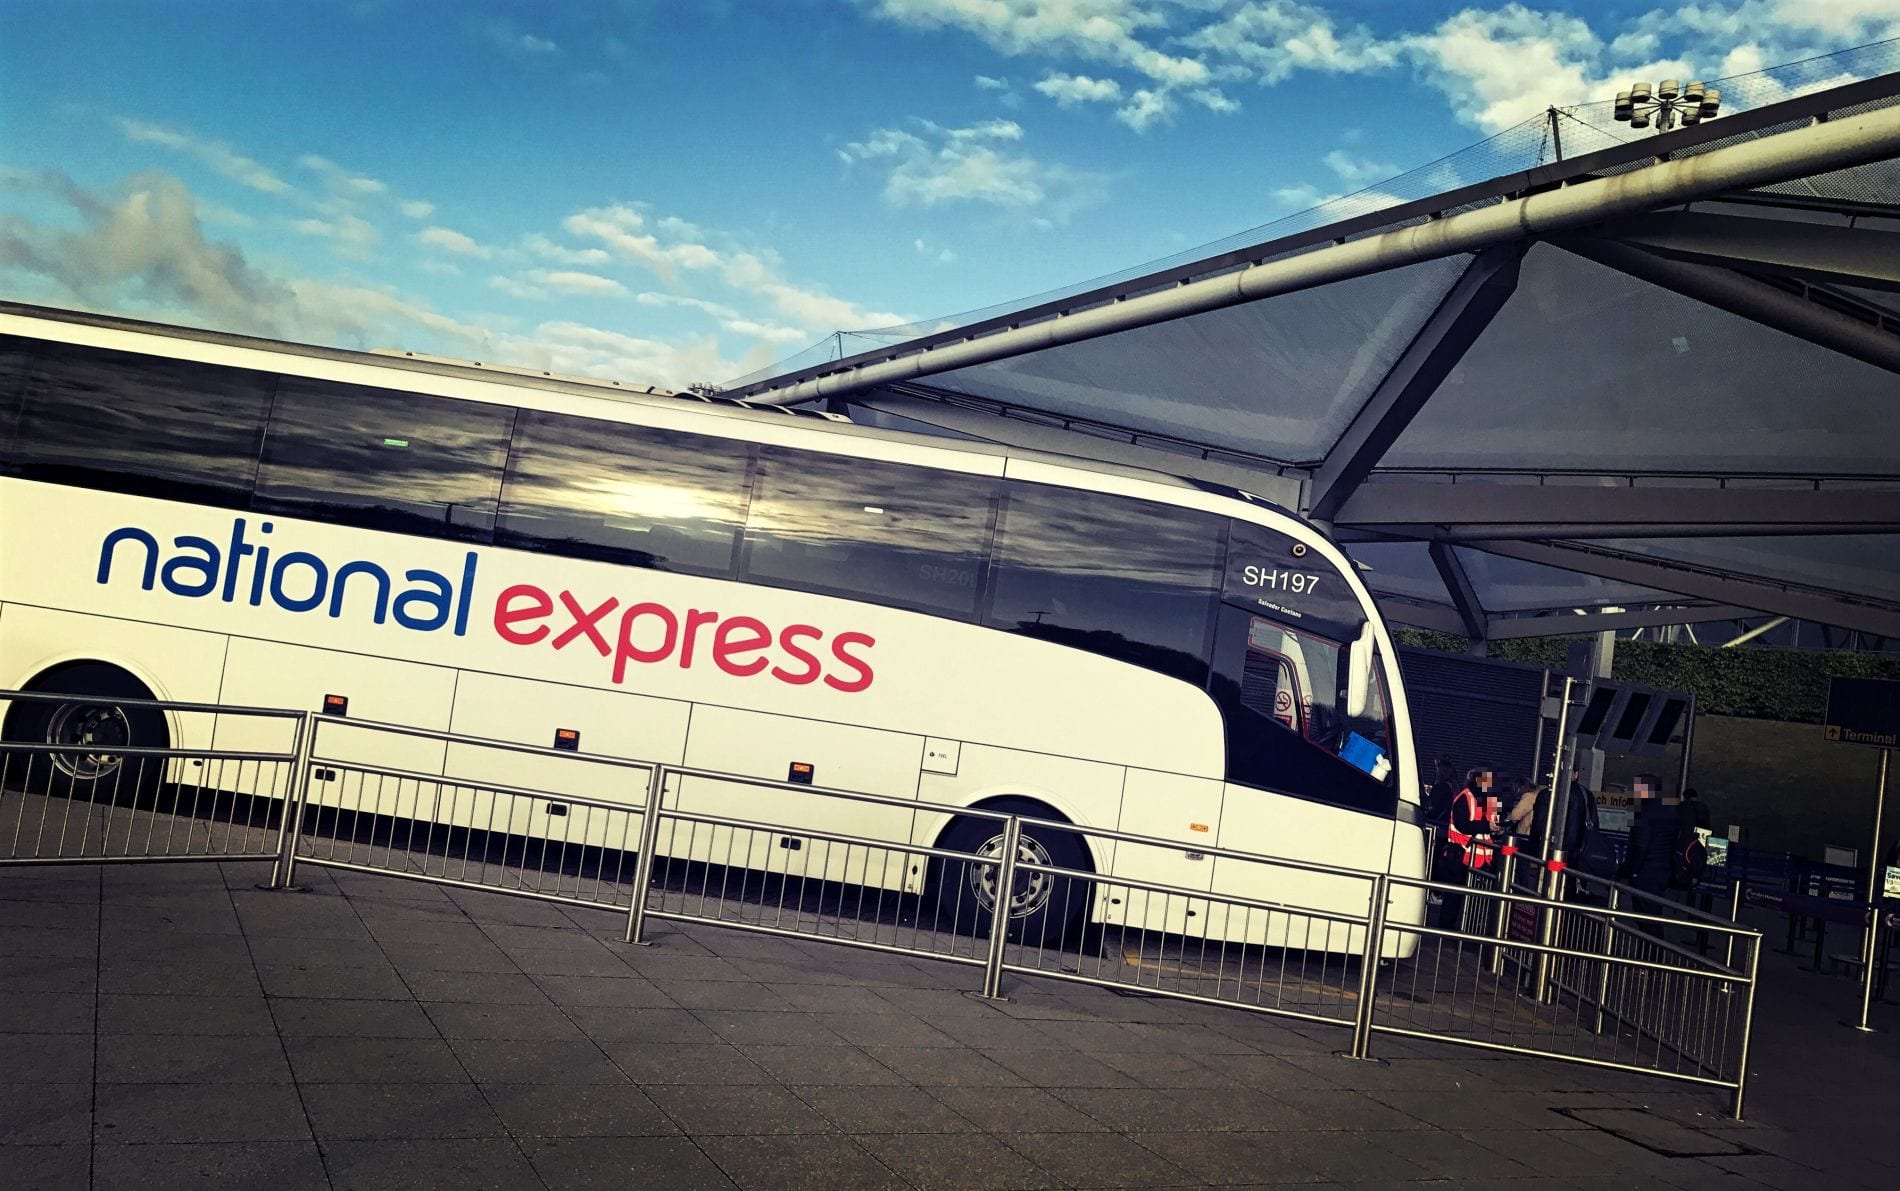 national-express-bus-stansted-london